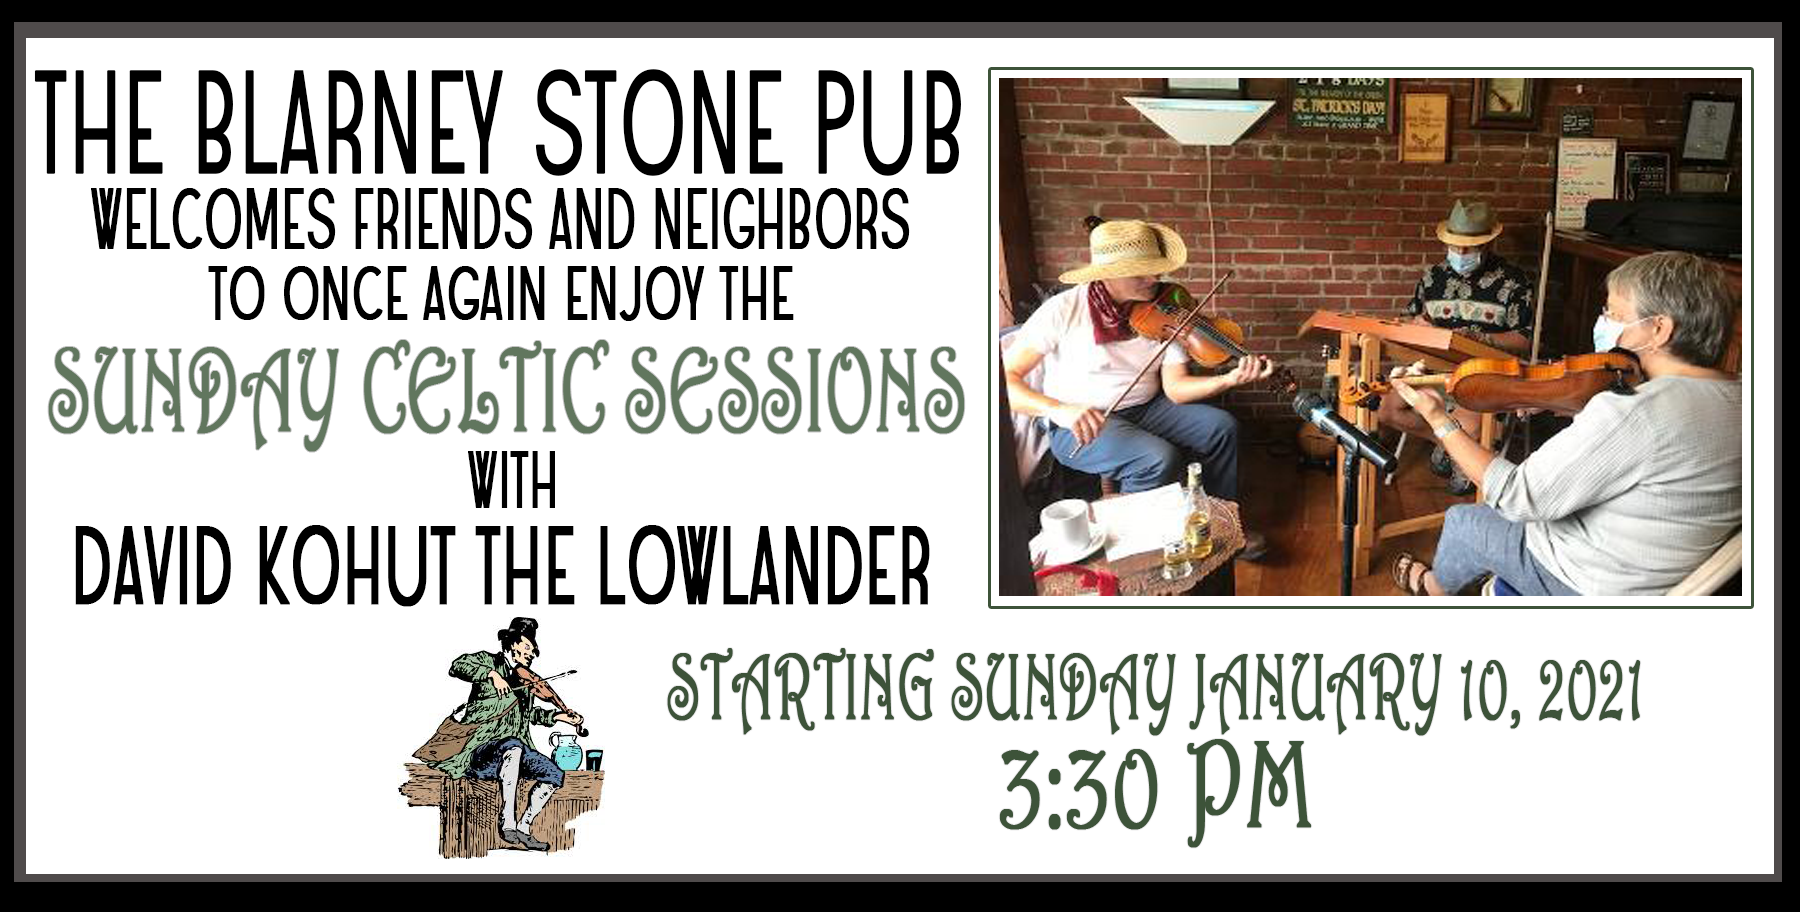 The Blarney Stone Pub Welcomes Friends and Neighbors to once again enjoy the Sunday Celtic Sessions with David Kohut the Lowlander Starting Sunday January 10, 2021 at 3:30